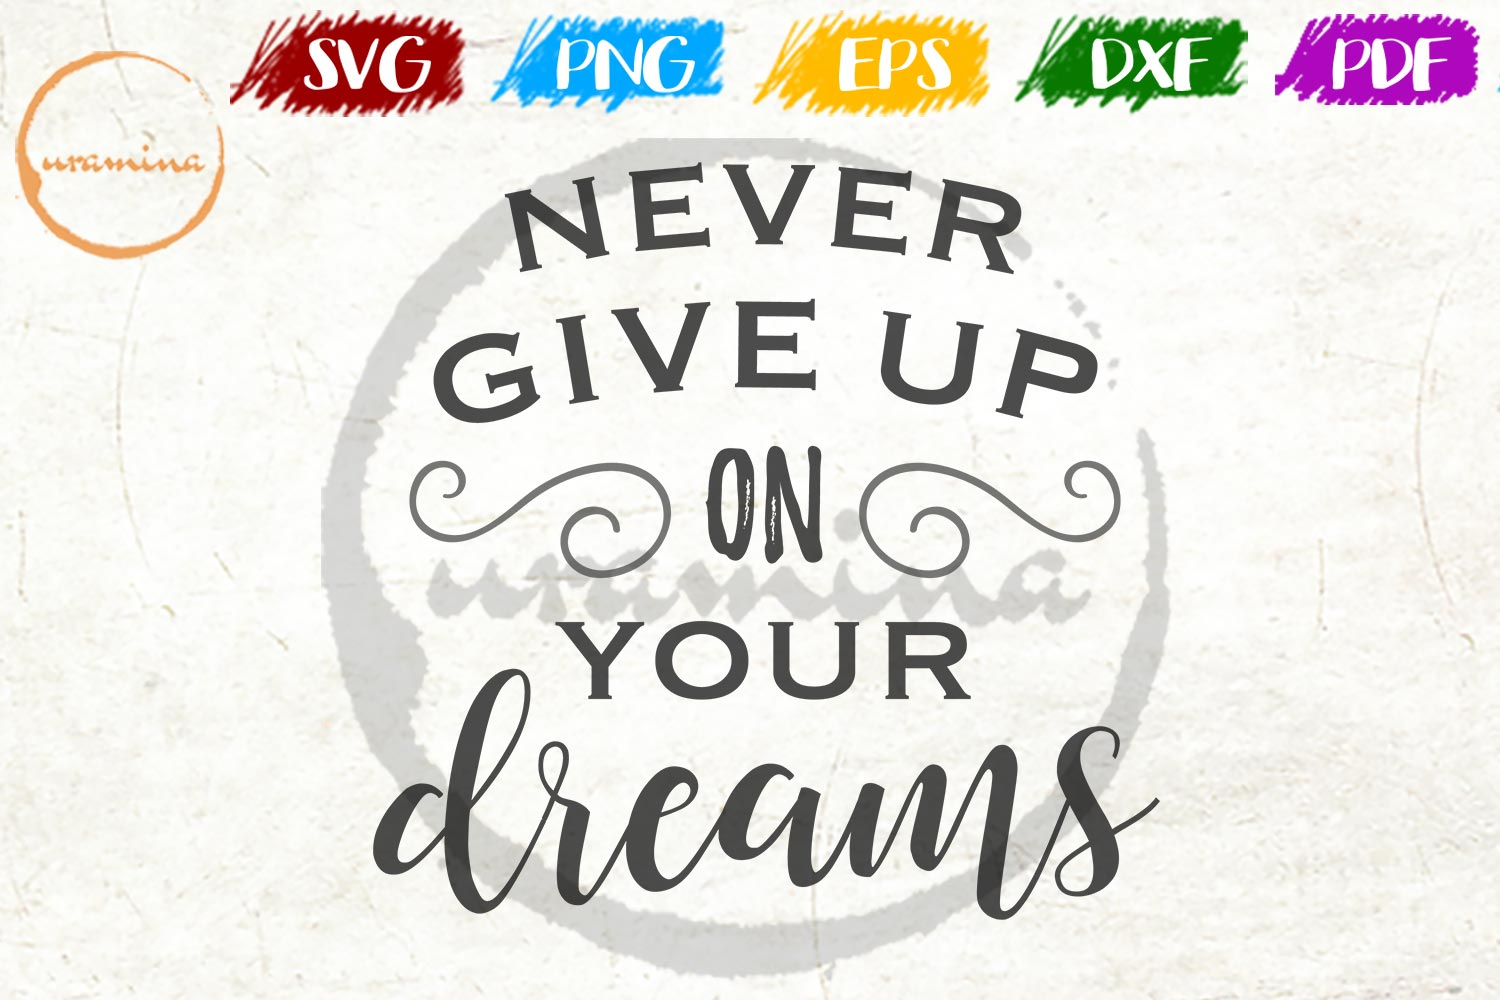 Download Free Never Give Up On Your Dreams Graphic By Uramina Creative Fabrica for Cricut Explore, Silhouette and other cutting machines.